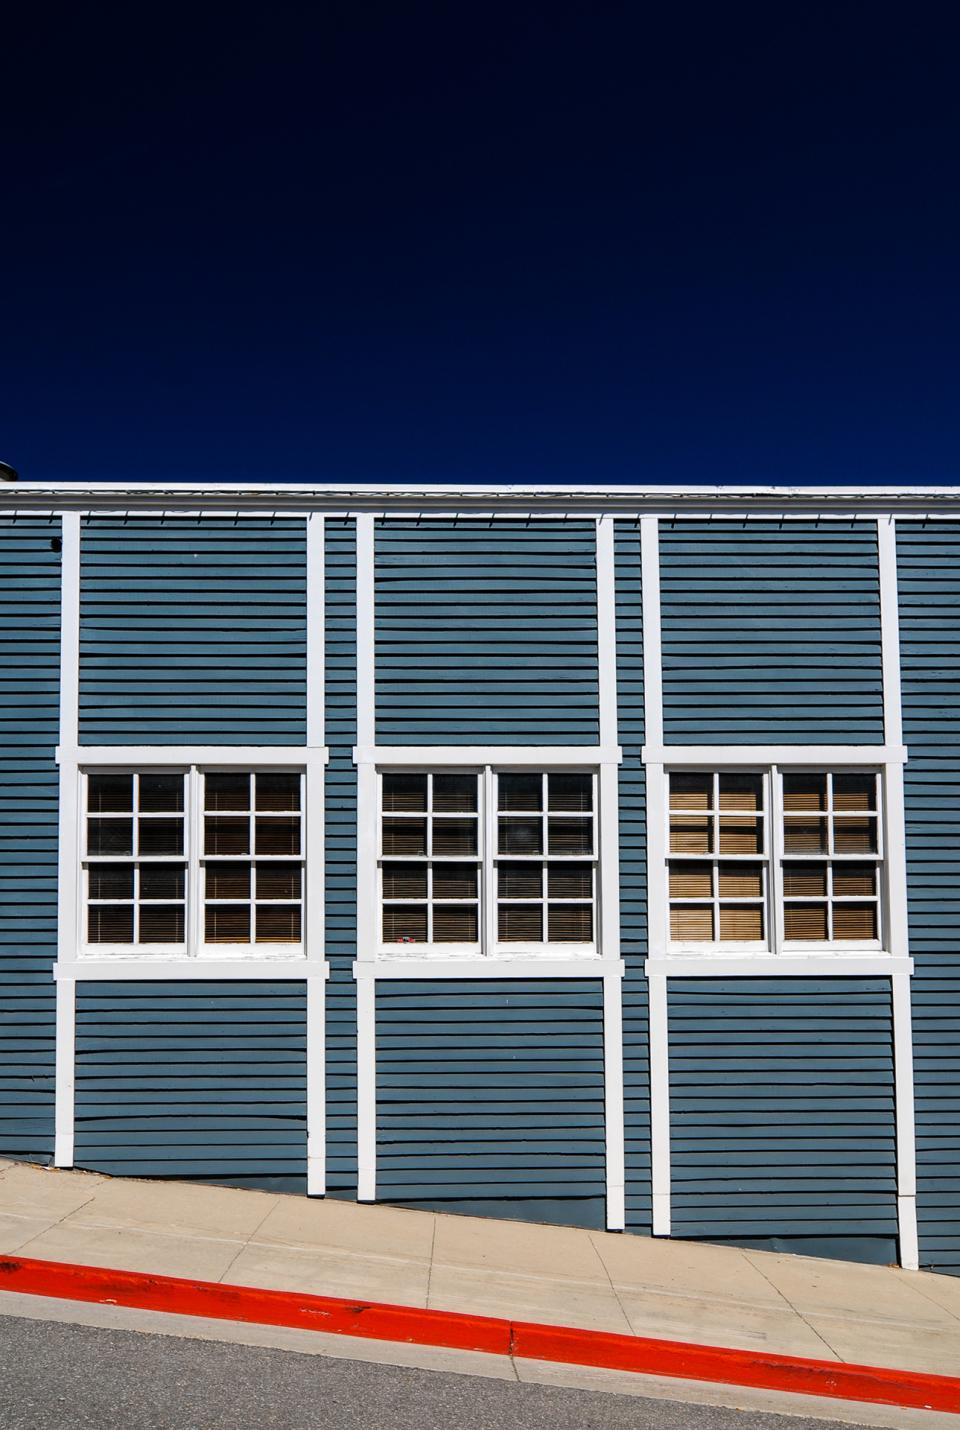 Many manmade structures love to be photographed in their colorful midday splendor.